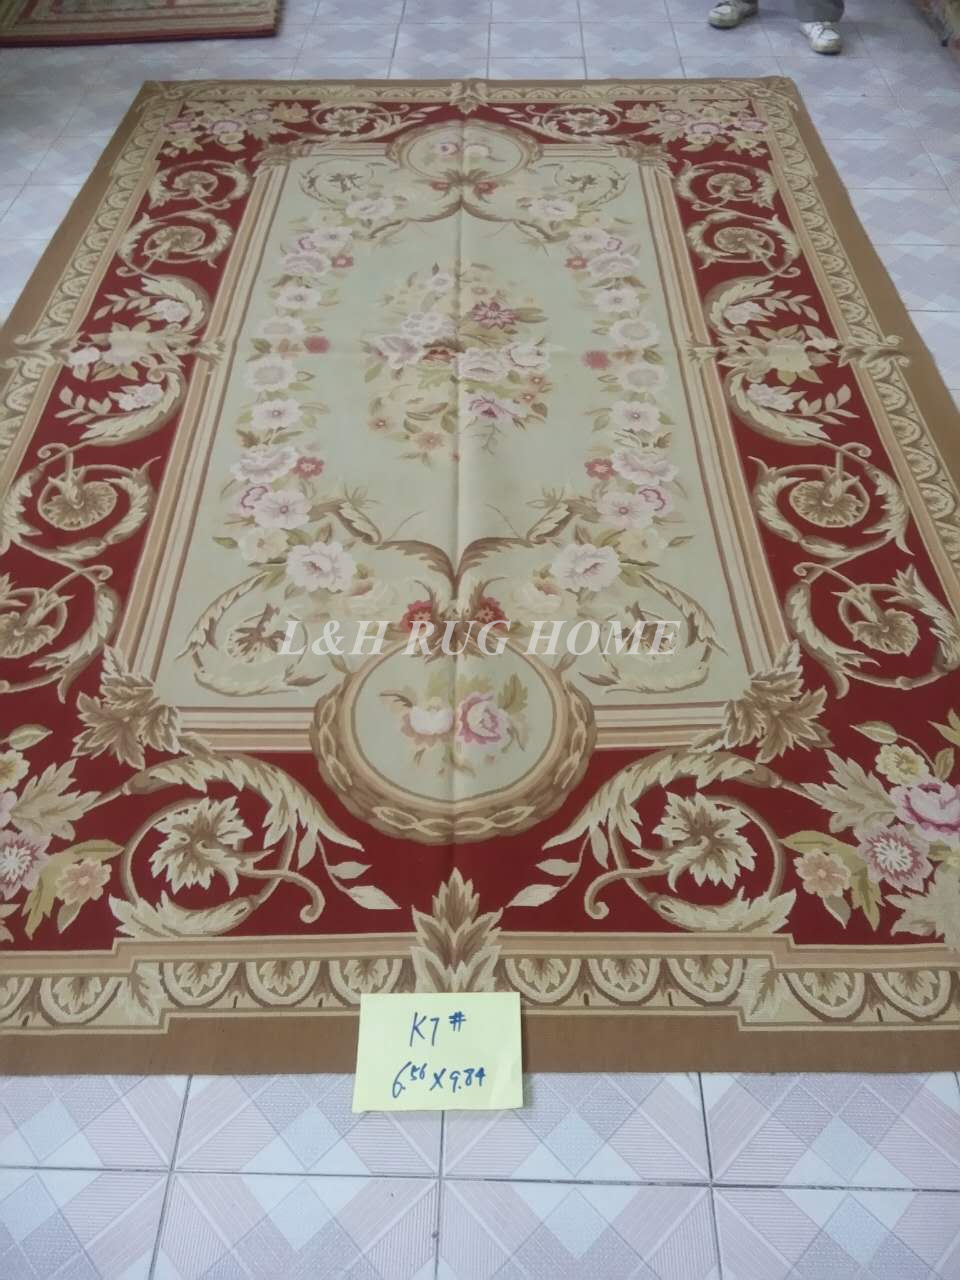 Free shipping 2x3m French Aubusson carpets for home decoration, French abusson hand weave woolen rugFree shipping 2x3m French Aubusson carpets for home decoration, French abusson hand weave woolen rug